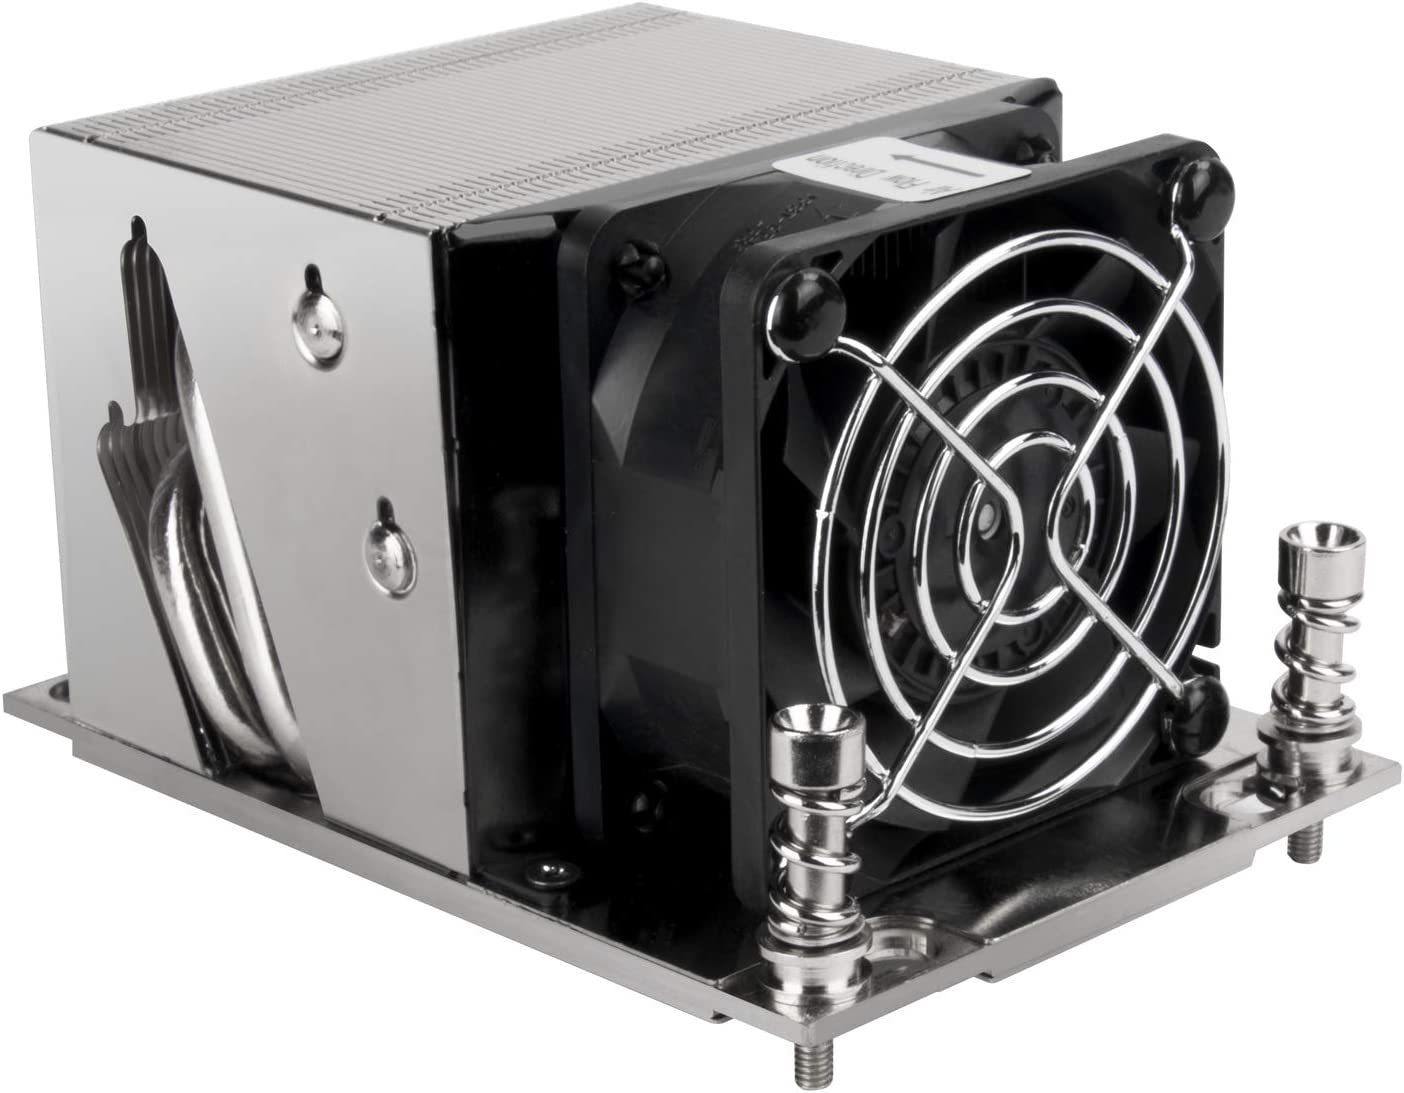 XE02-SP3 SilverStone Technology 2U Small Form Factor Server/Workstation CPU Cooler for AMD SP3/TR4 sockets